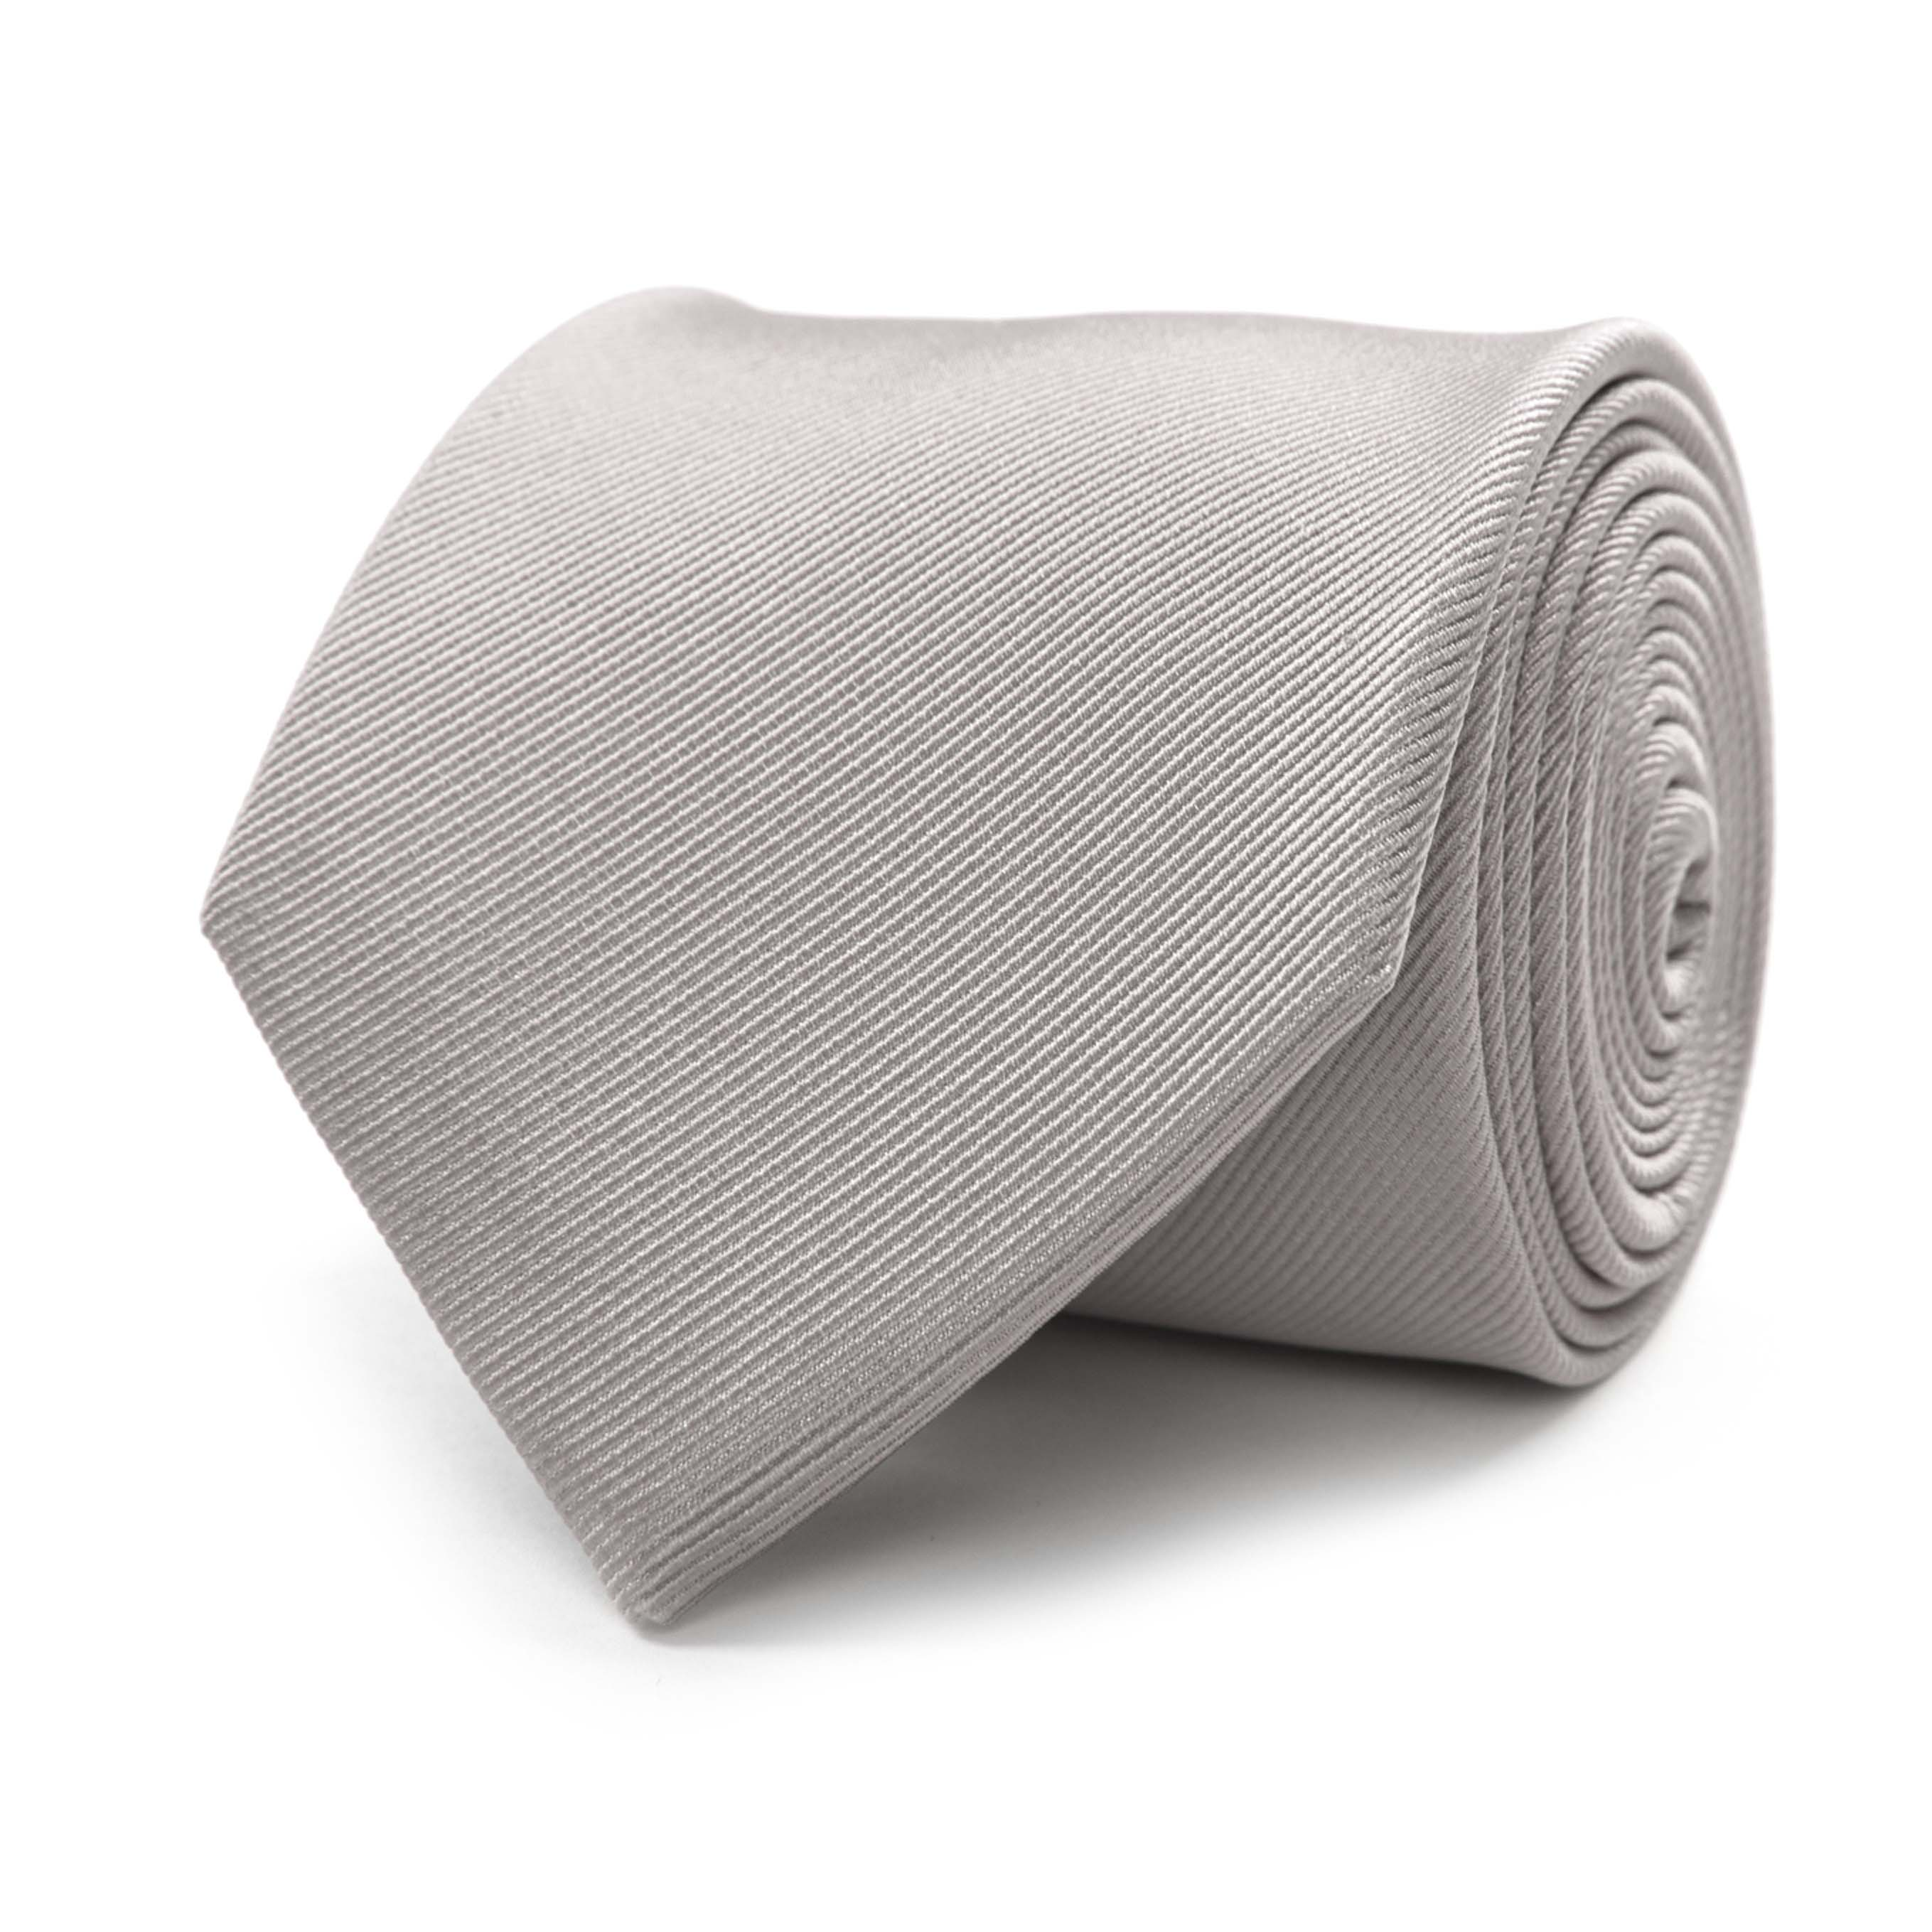 Tie classic ribbed silver grey